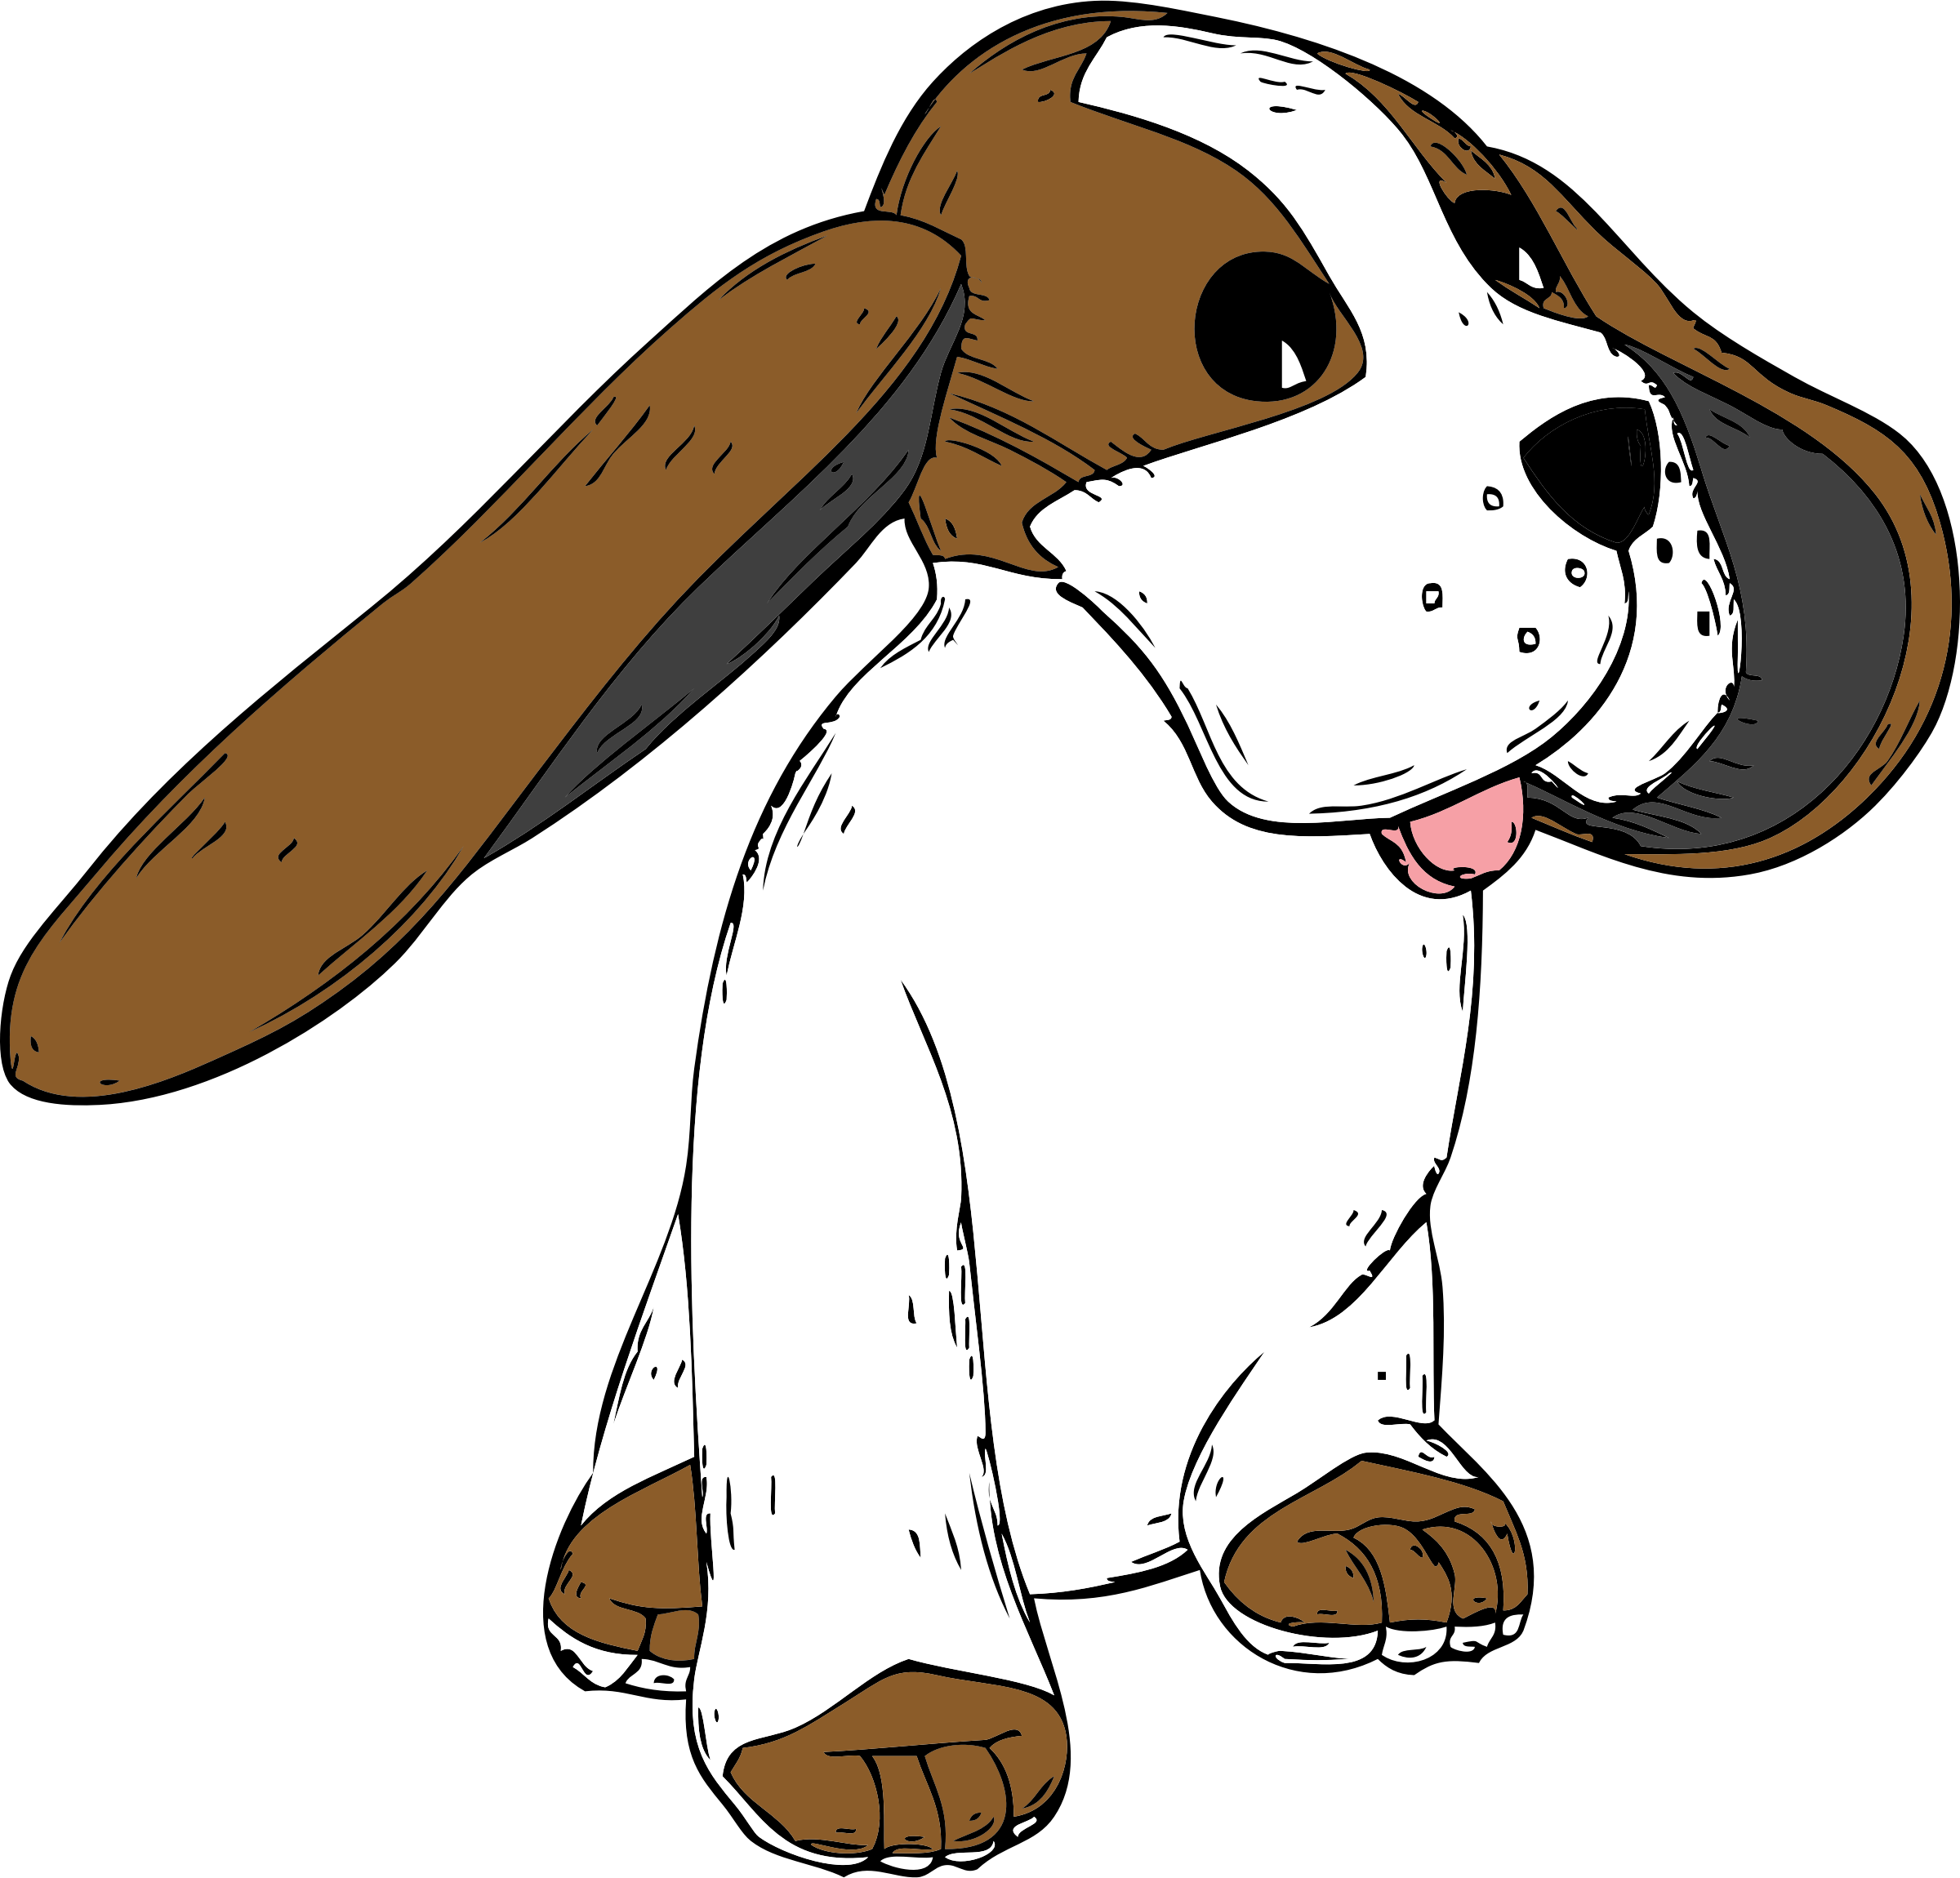 Big earred dog image. Pet clipart beagle